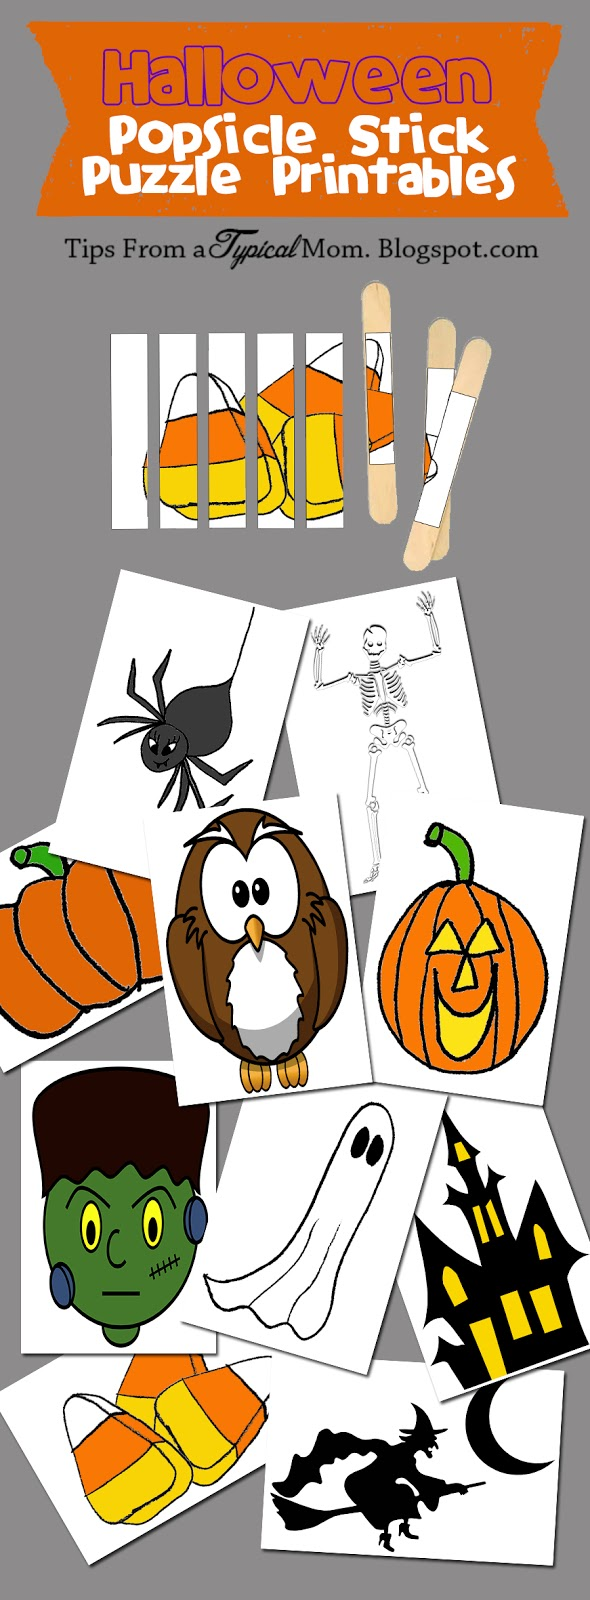 popsicle stick october puzzles free printables tips from a